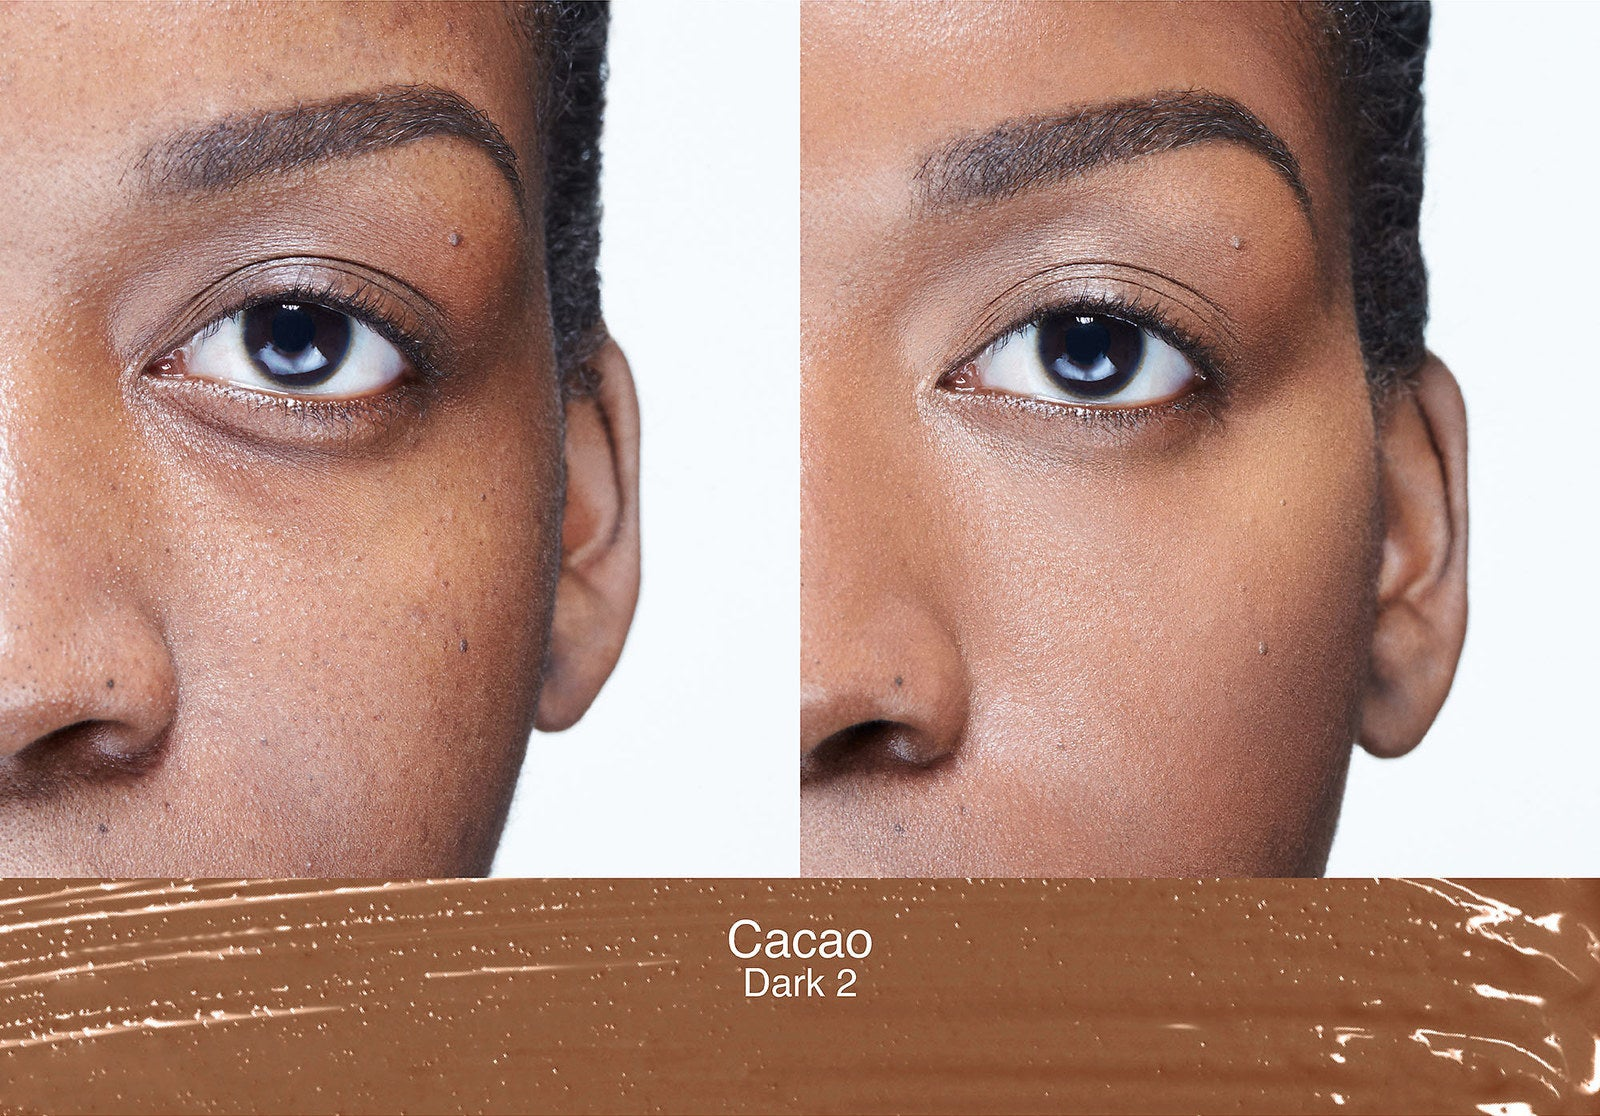 A before/after of a model using shade Cacao to cover up dark circles and even out skintone